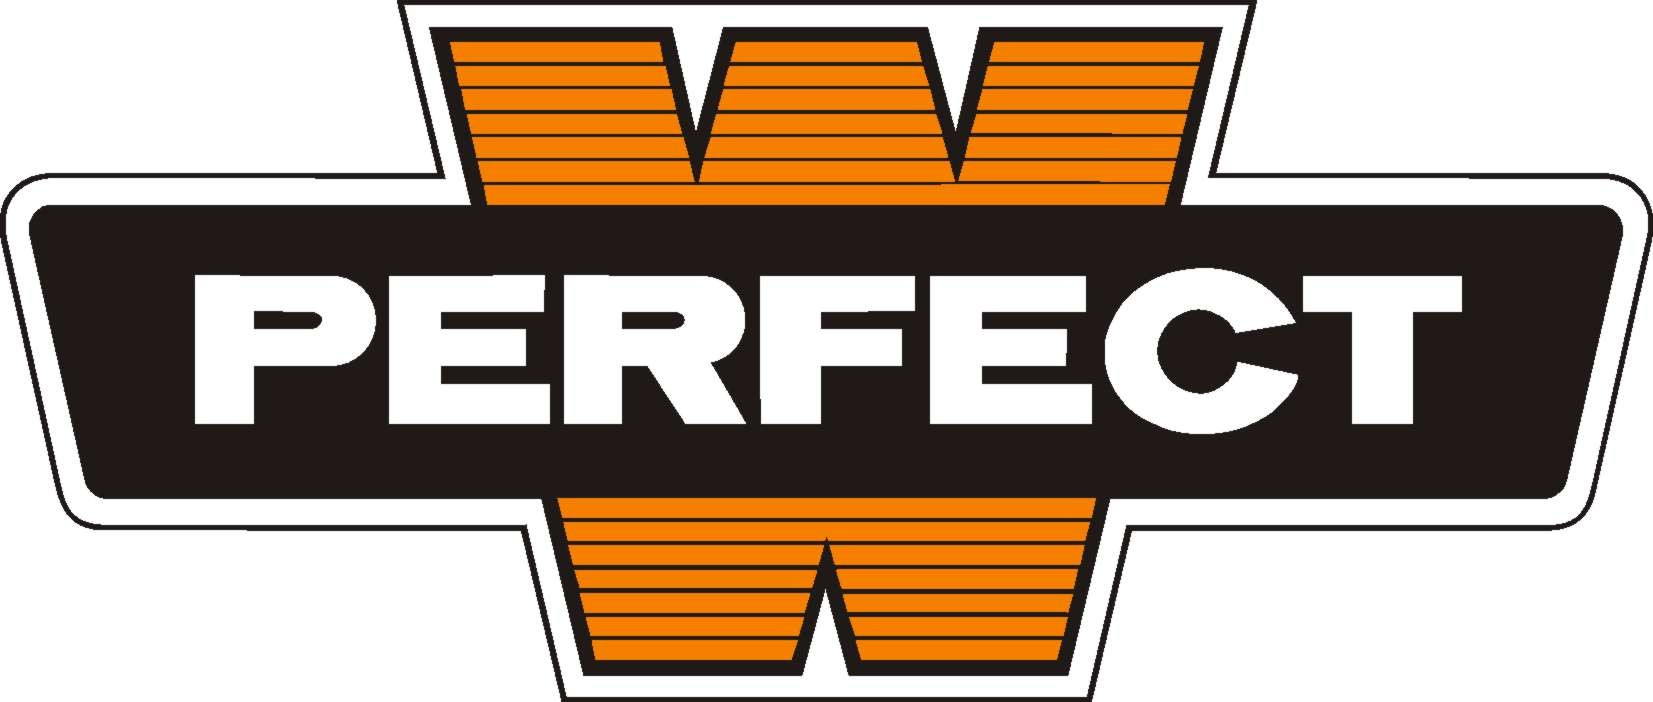 PERFECT - Van Wamel B.V.